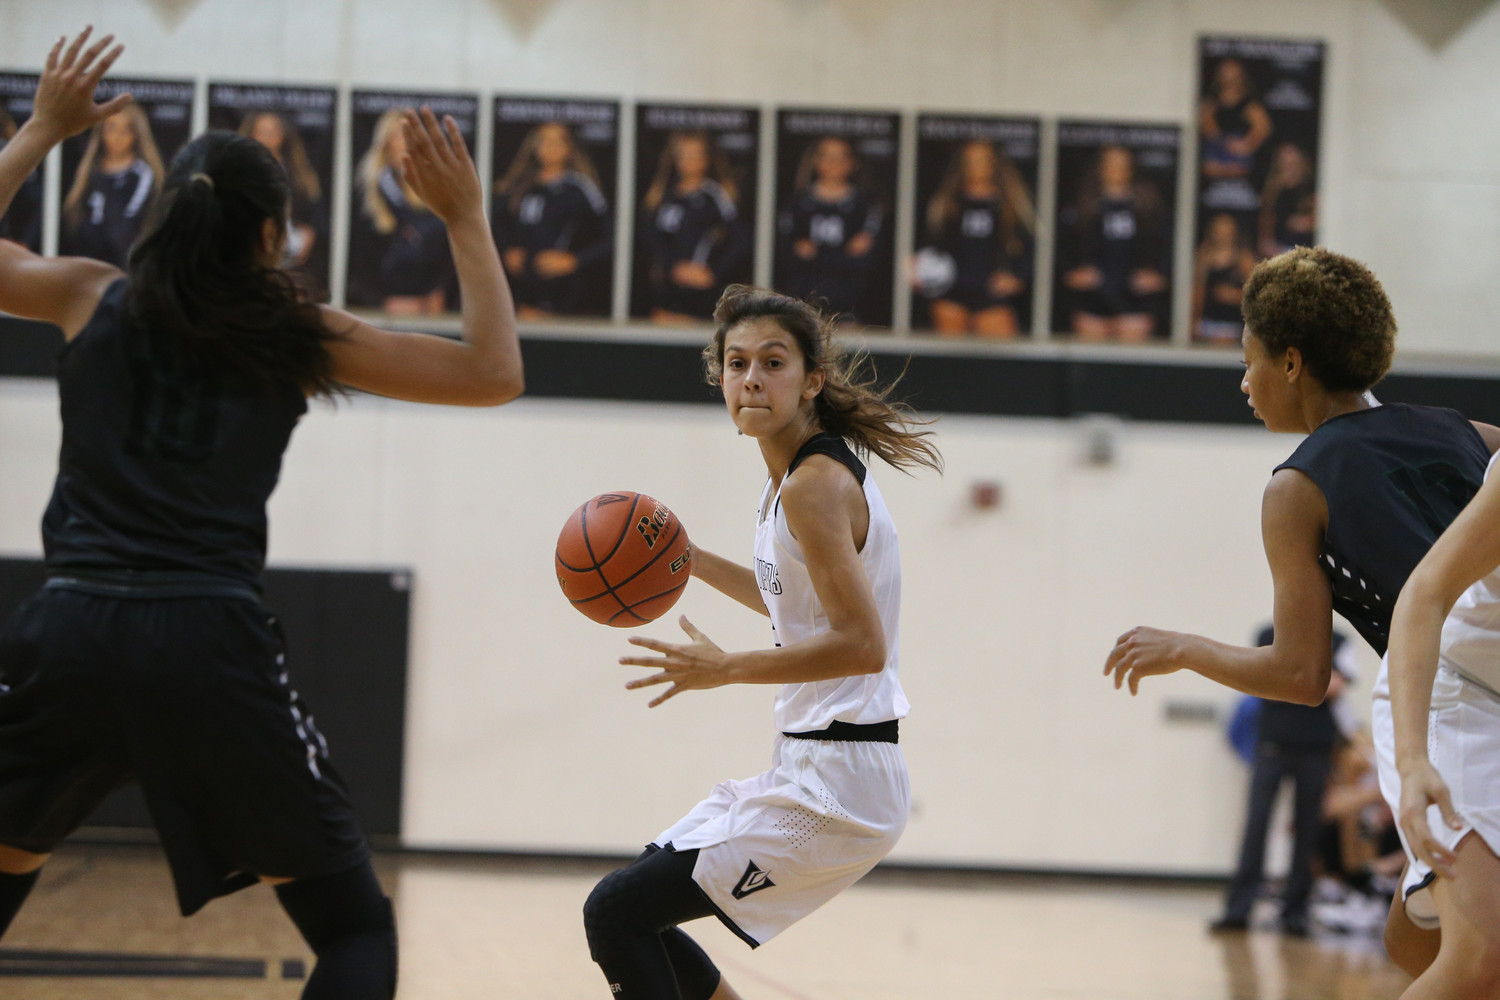 Vandegrift Vipers point guard Bee Gonzales (2) looks to pass during a girls high school basketball game between the Vandegrift Vipers and the Cedar Park Timberwolves at Vandegrift High School in Austin, Texas on Nov. 14, 2017.